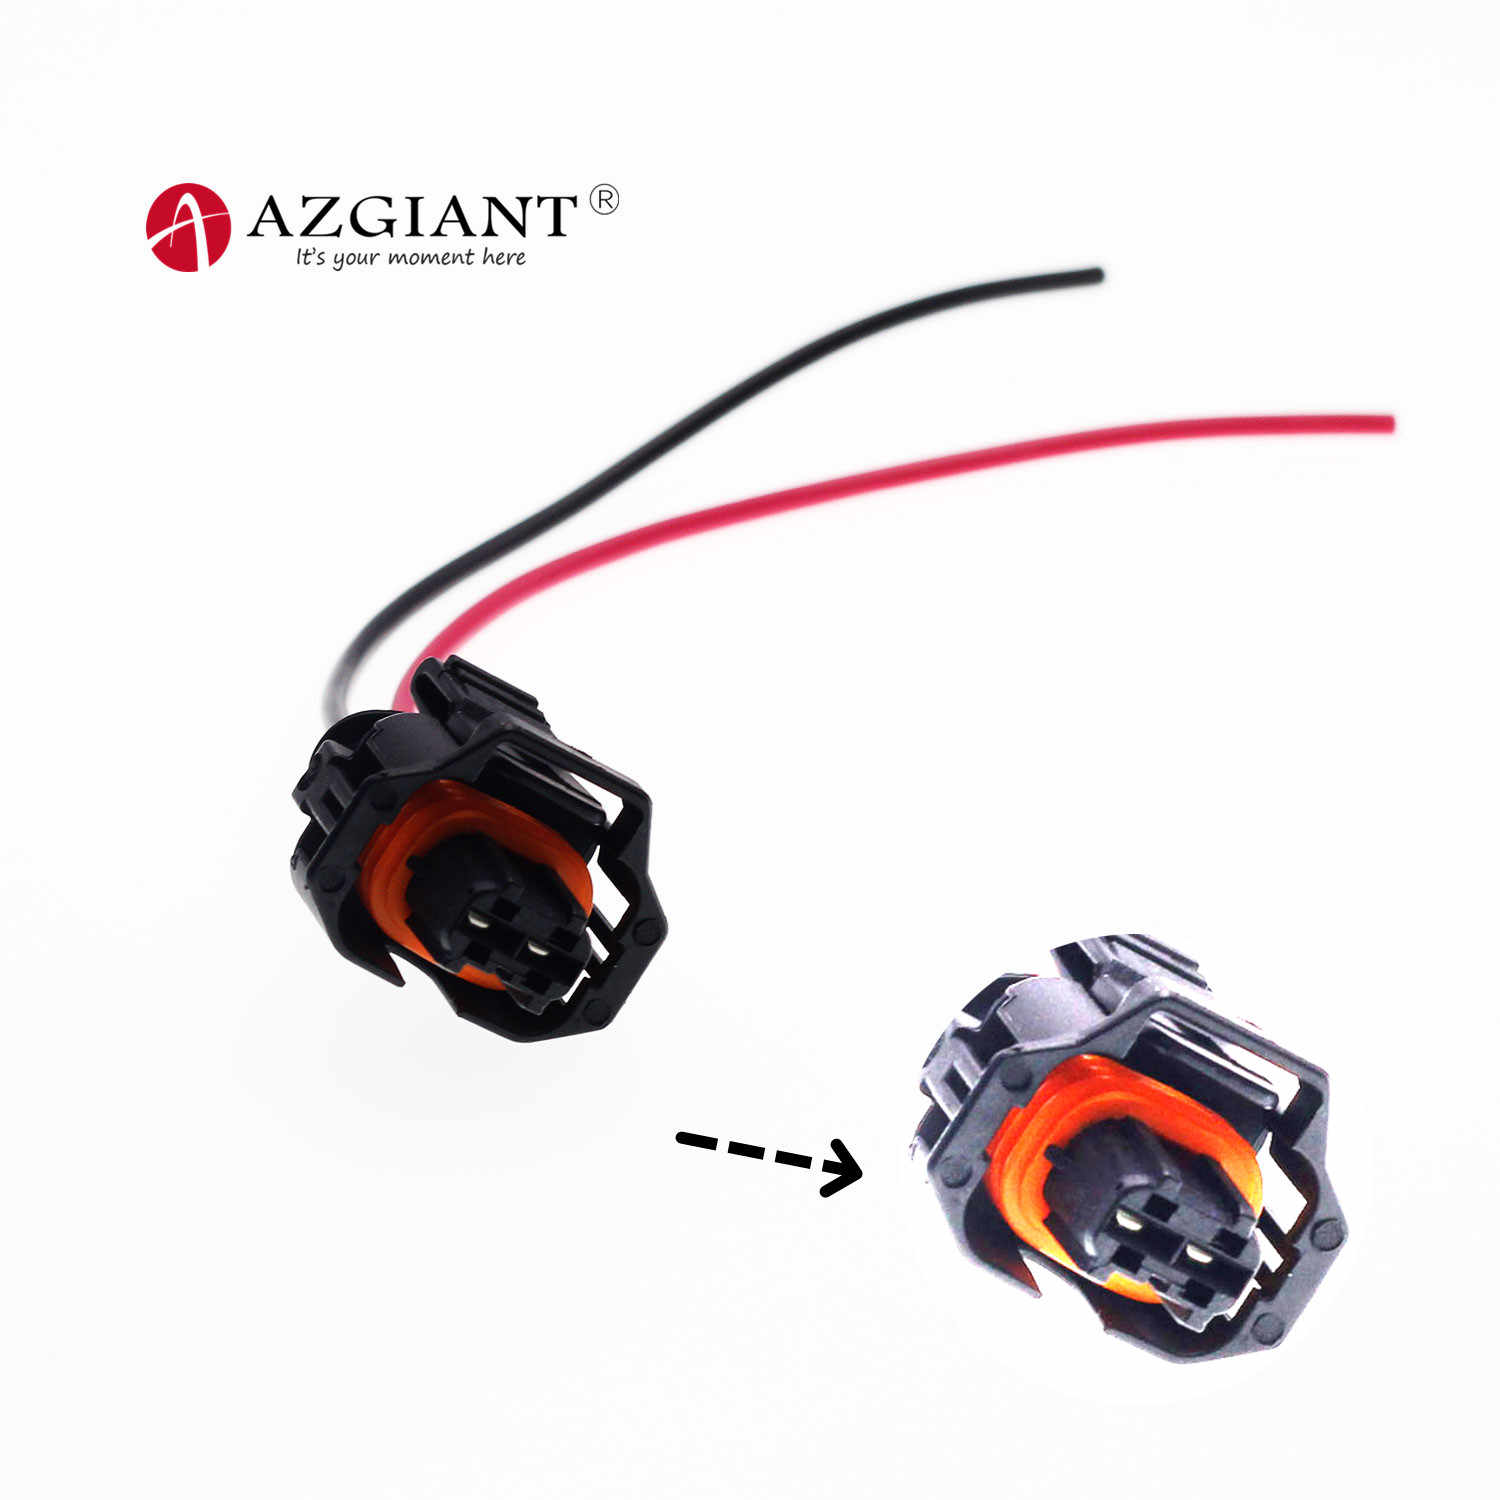 2pin DJ7026A-3.5-21 DJ7026B-3.5-21 cable Pigtail para Bosch diesel común carril inyector macho conector con terminal